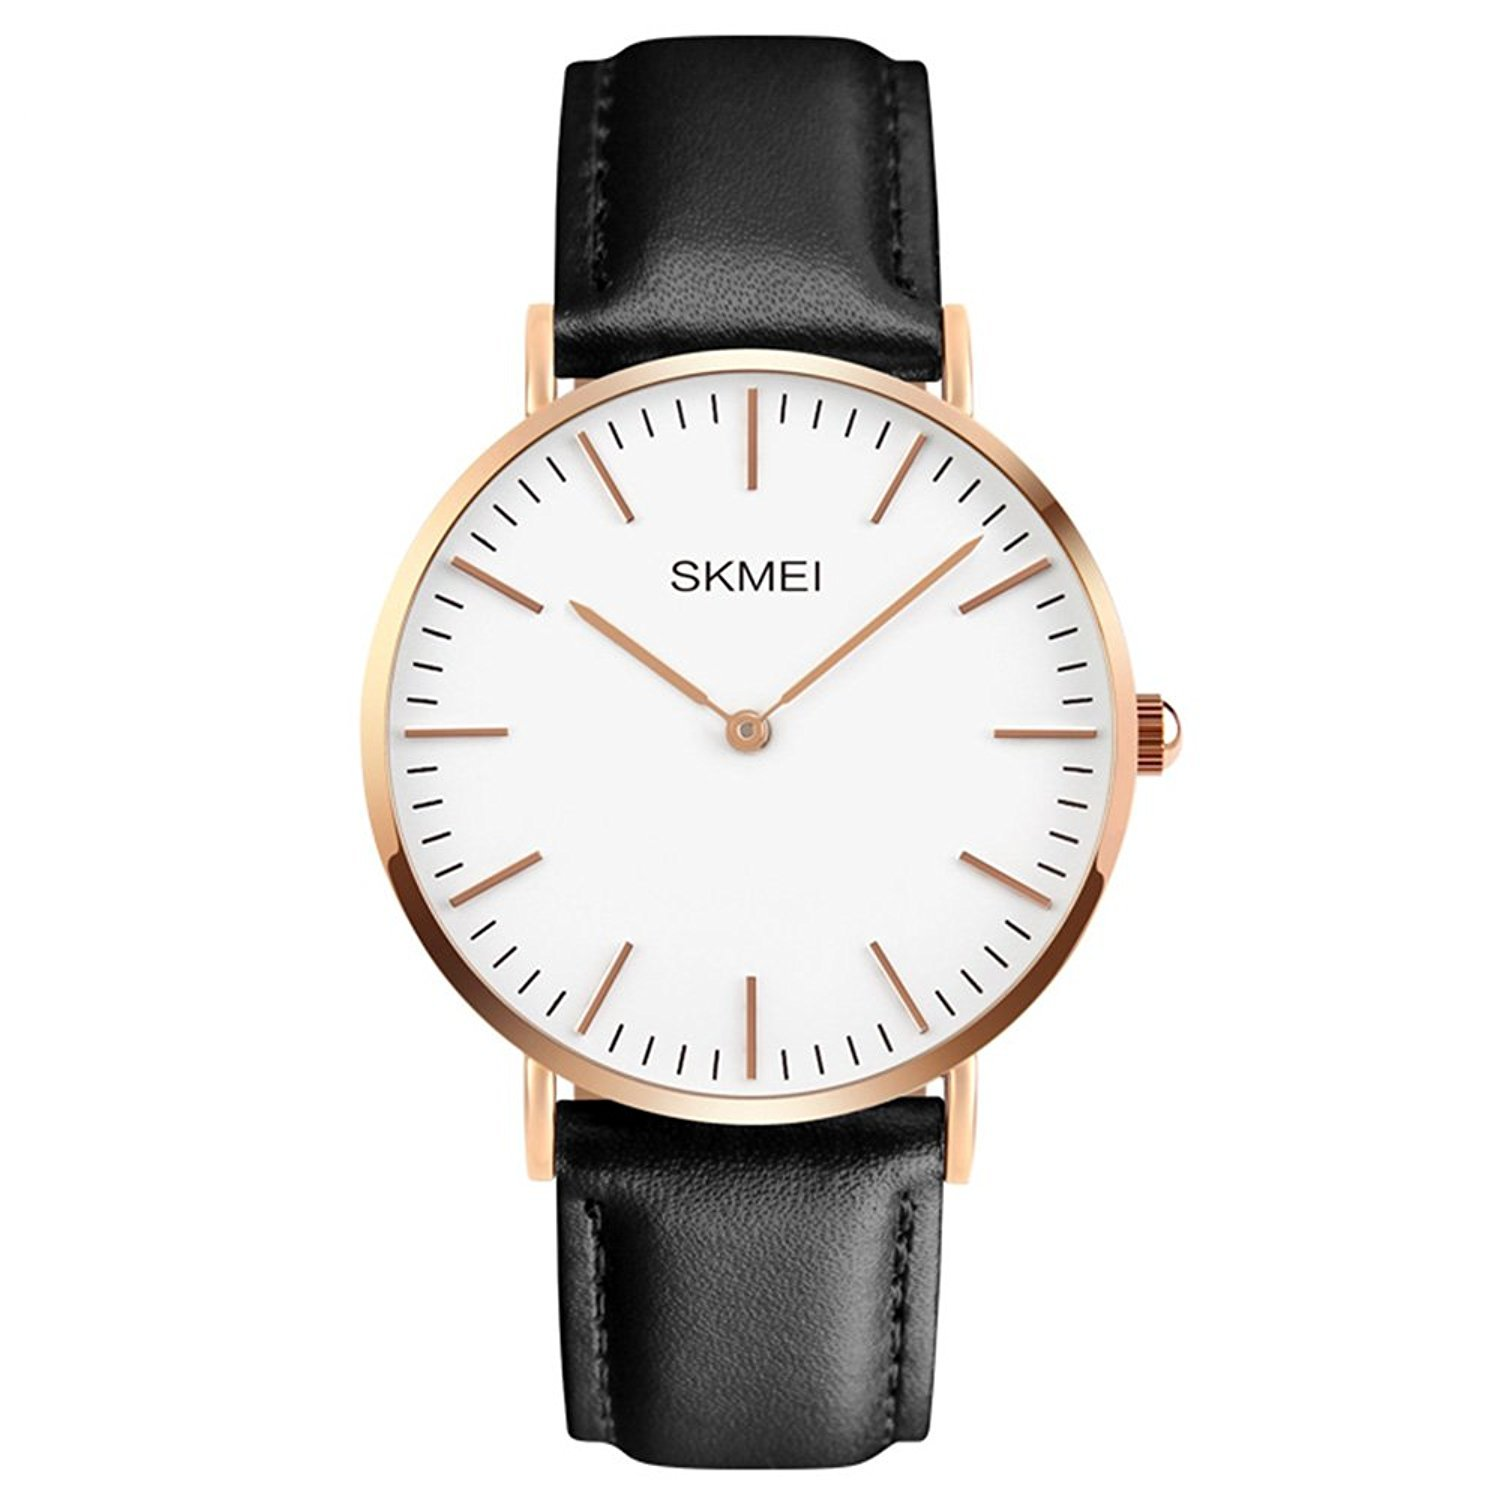 Men S Dress Wrist Quartz Watch With Black Leather Band Men Business Waterproof Classic Casual Analog Watches Fashion Thin Case Wristwatch